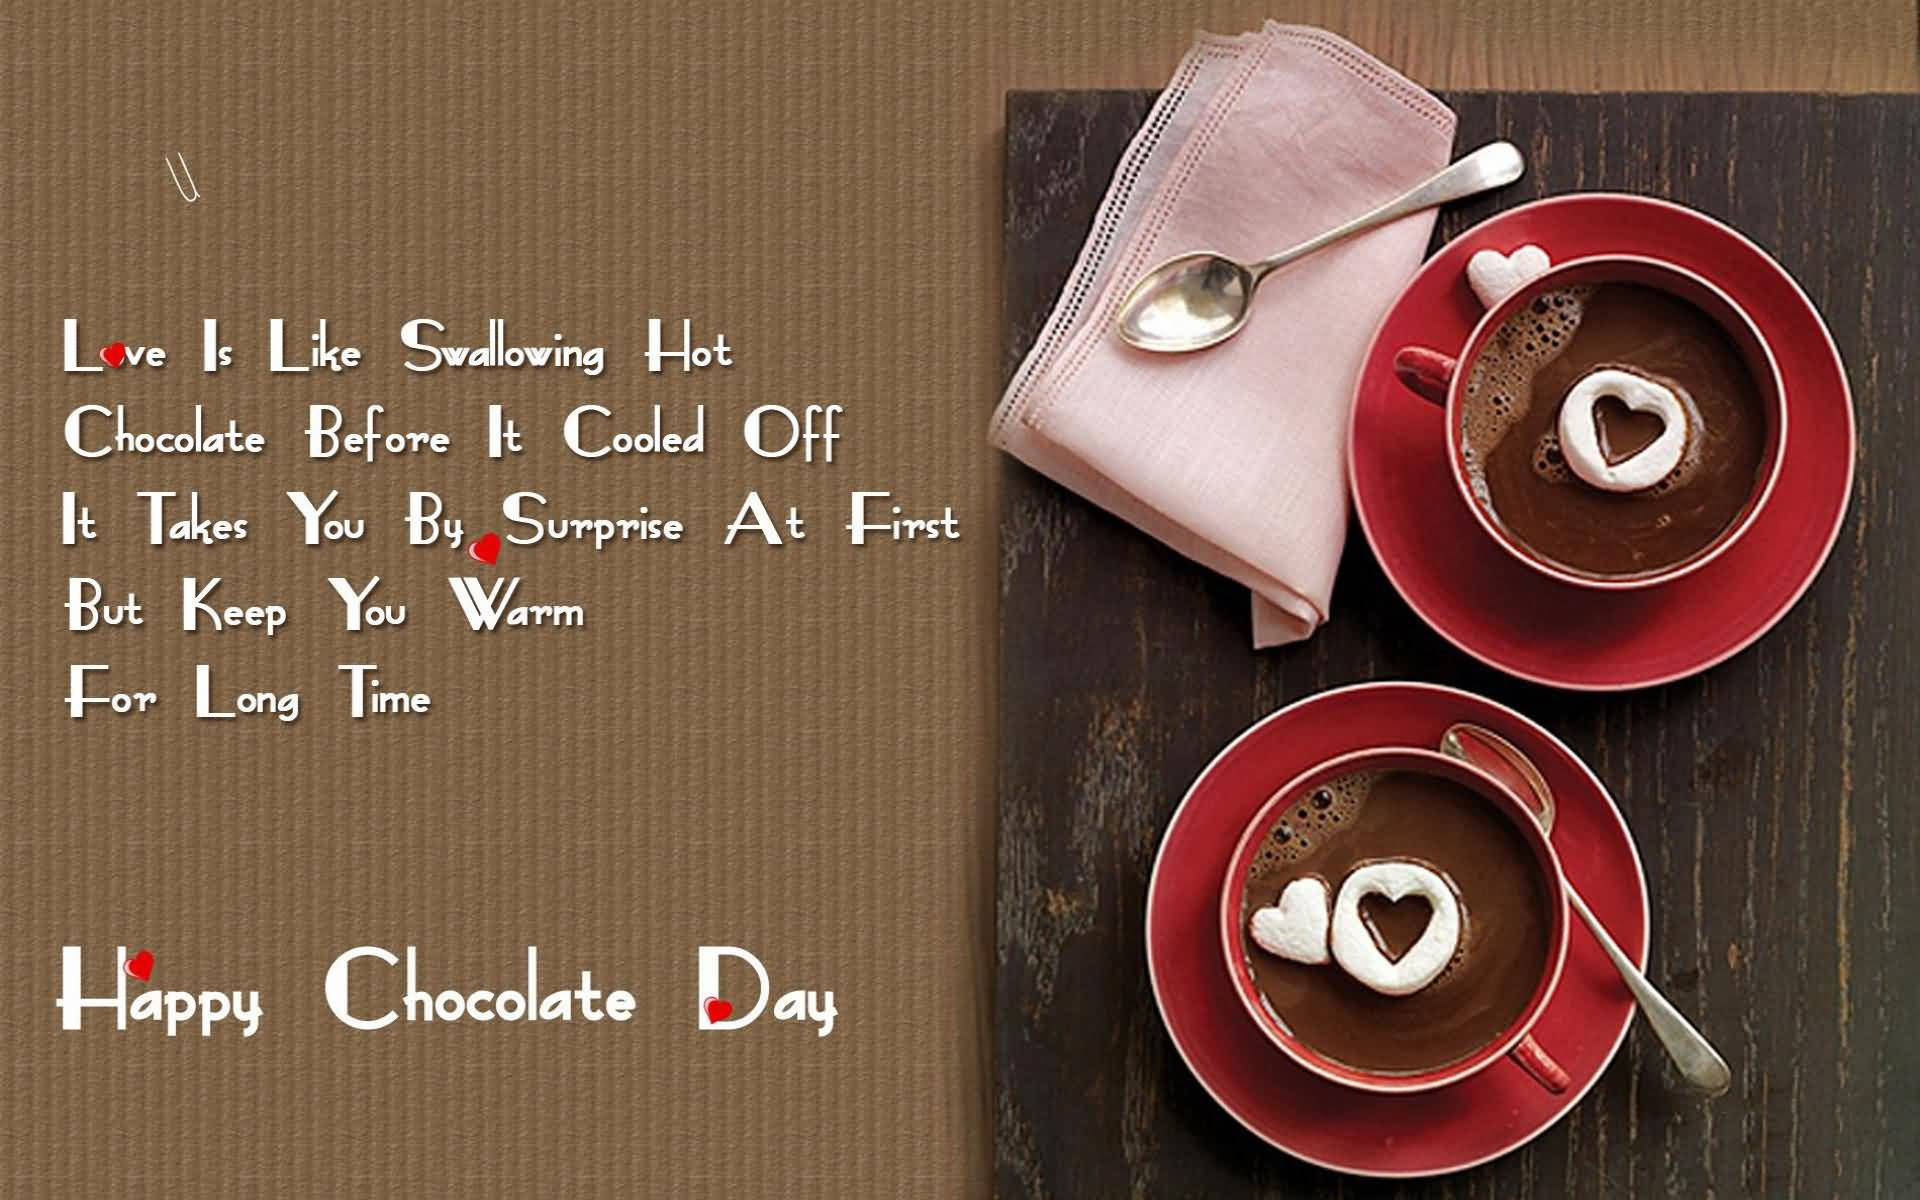 Happy Chocolate Day clear and hd pic for your smart boy